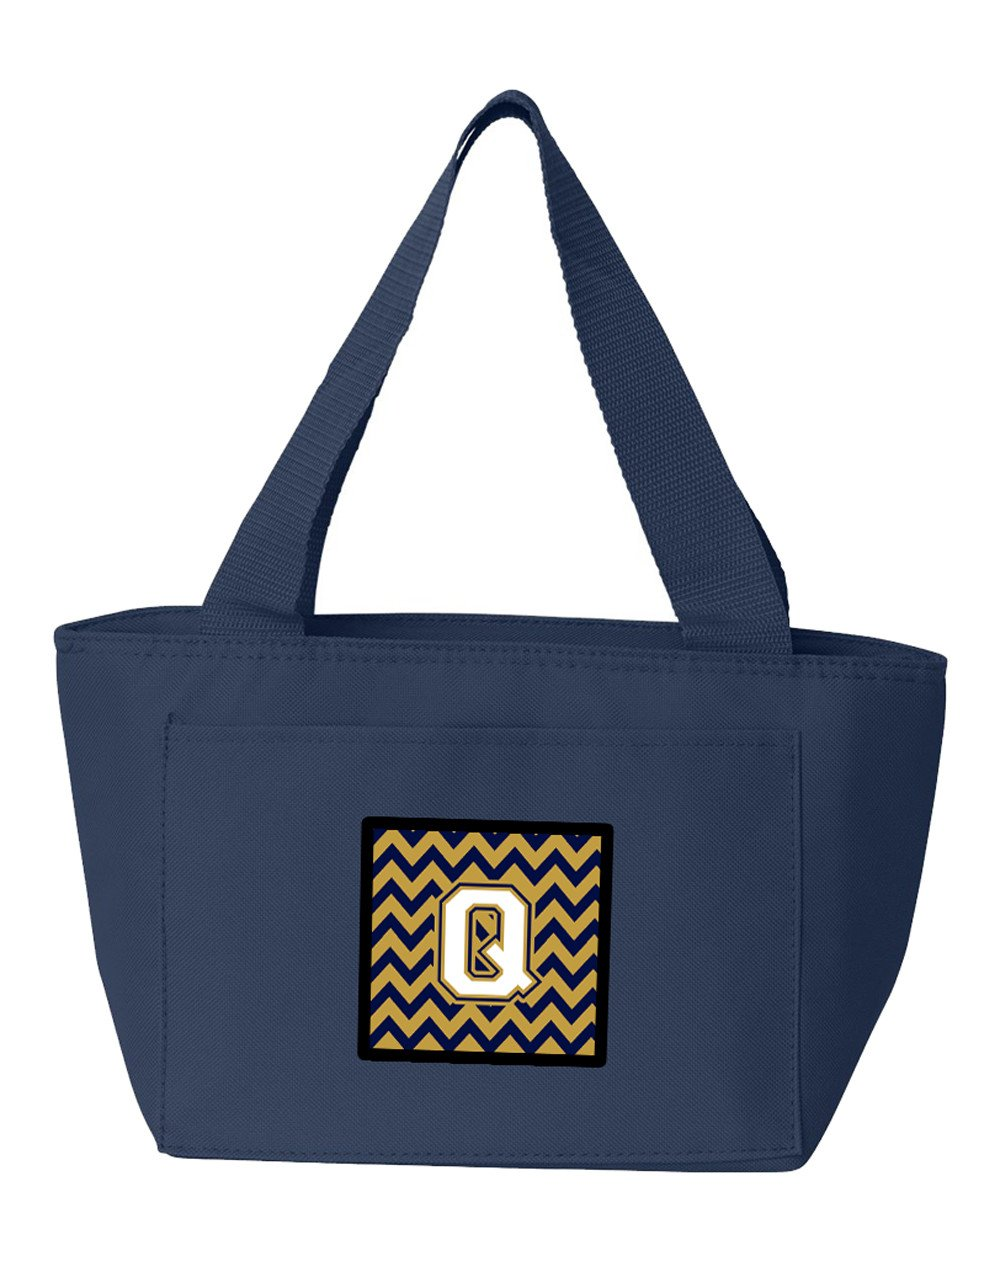 Letter Q Chevron Navy Blue and Gold Lunch Bag CJ1057-QNA-8808 by Caroline's Treasures